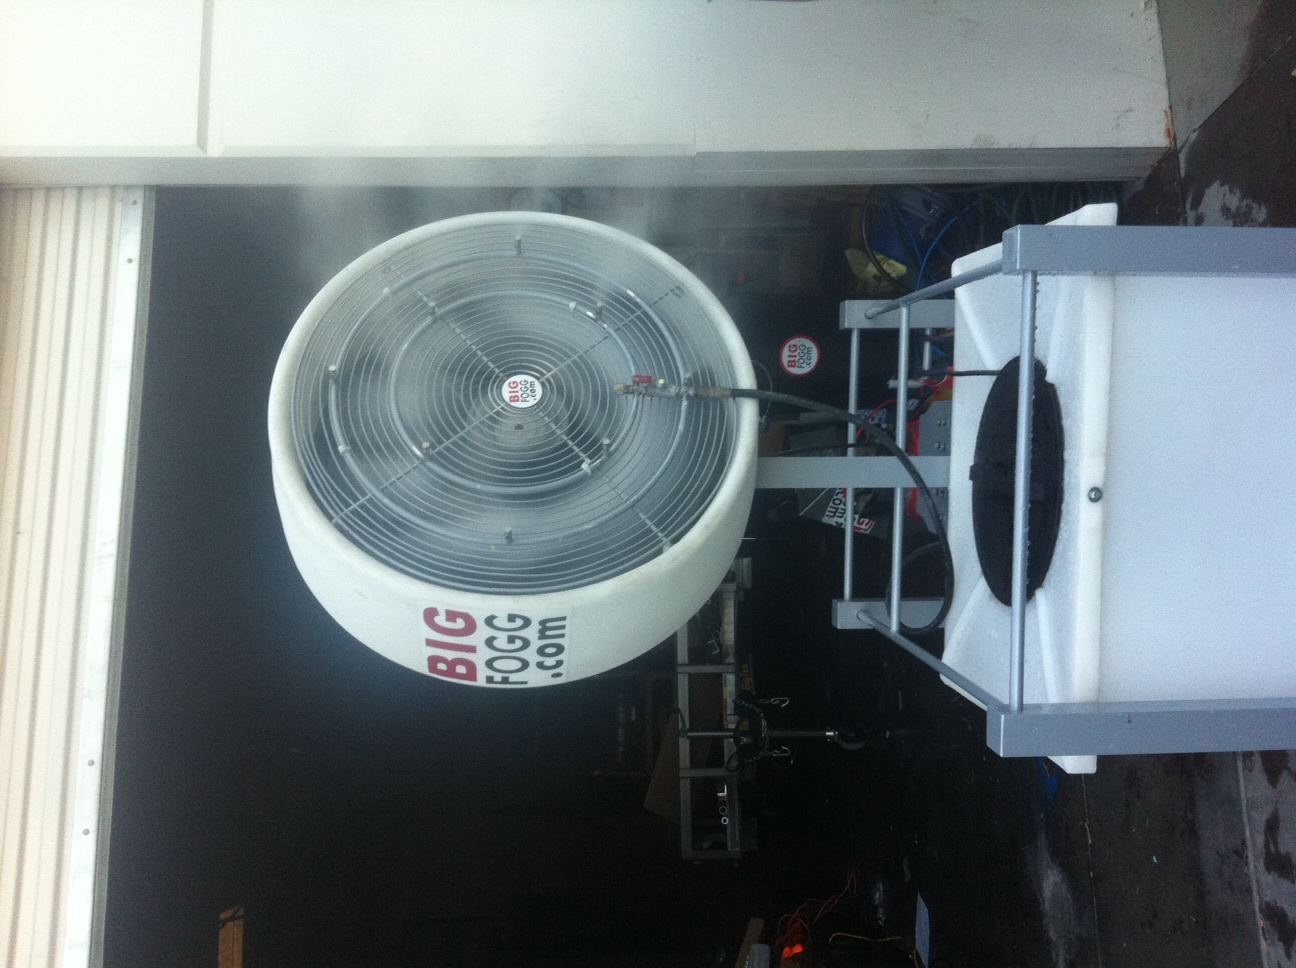 Big Fogg High-Pressure Misting Fan with 40' Gallon Tank outside a garage